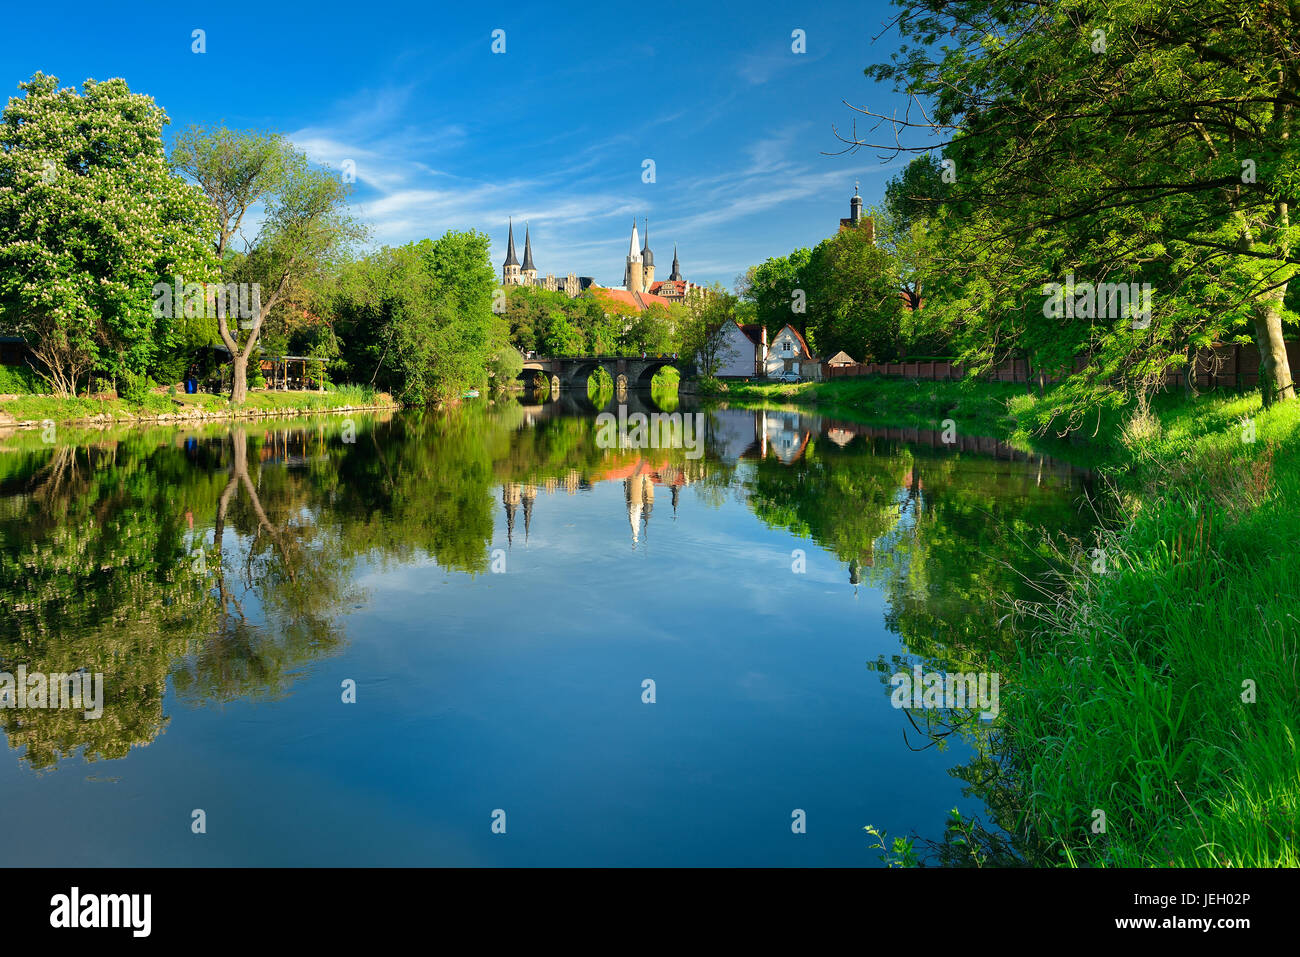 Merseburg Cathedral and Merseburg Castle are reflected in the River Saale, Merseburg, Saxony-Anhalt, Germany - Stock Image